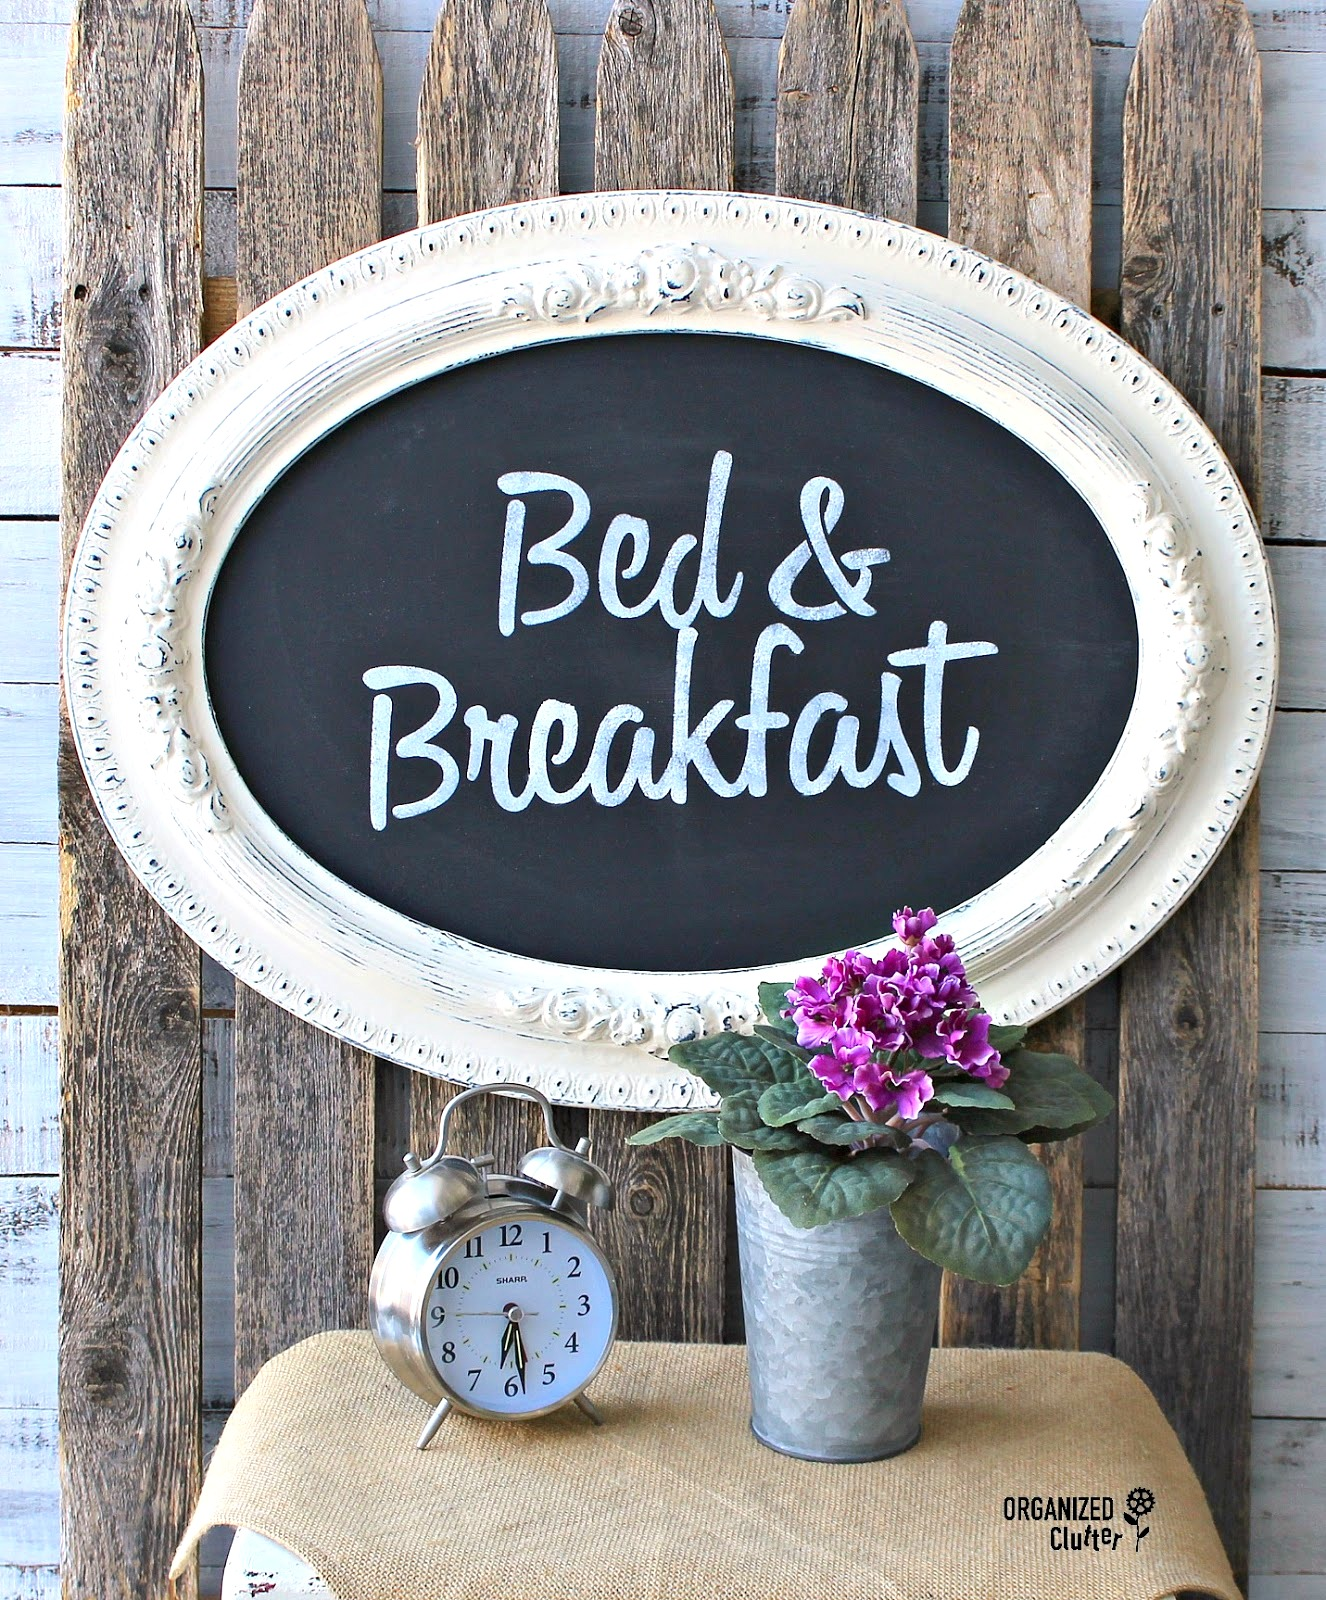 Faux chalkboard Bed & Breakfast sign by Organized Clutter, featured on Funky Junk Interiors